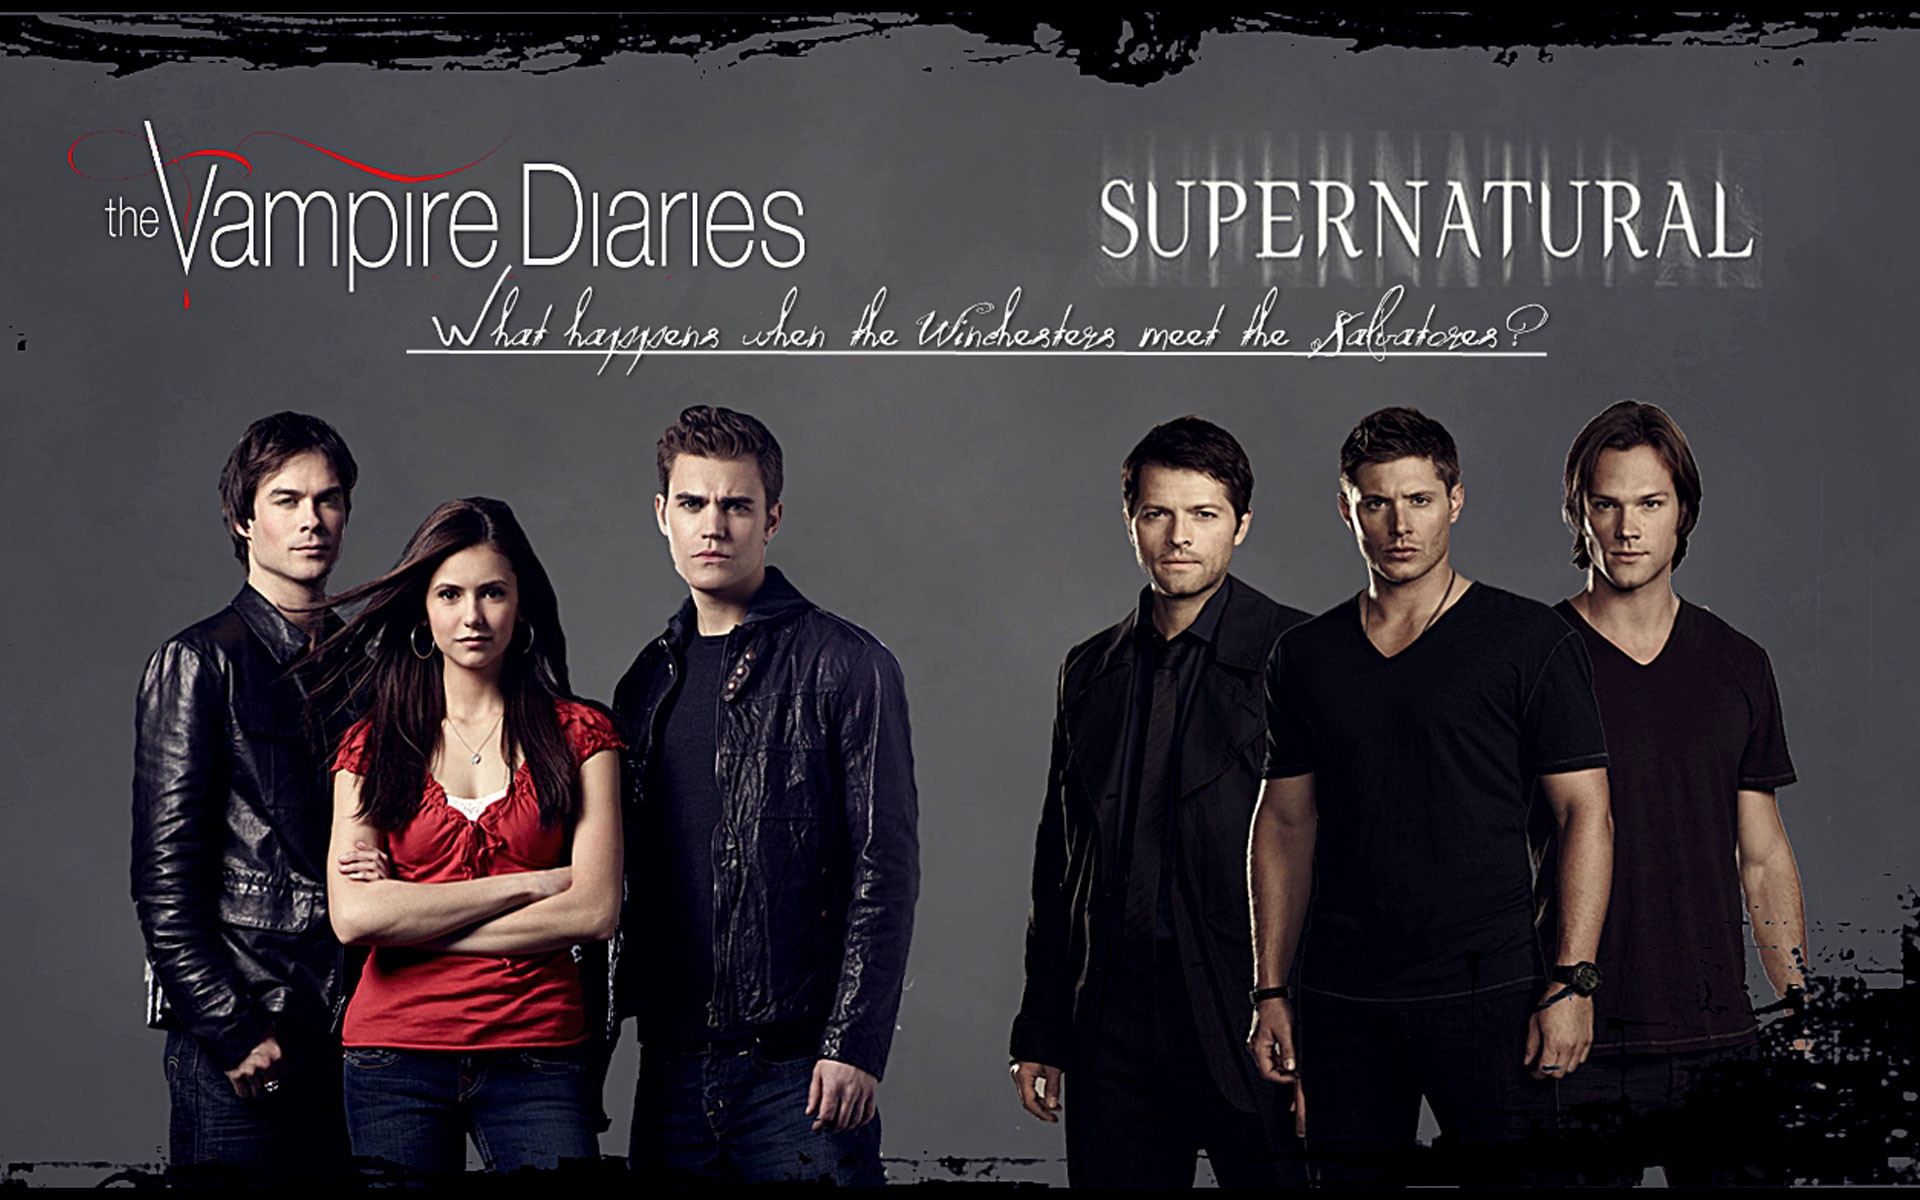 1920x1200 Supernatural vampire diaries wallpaper.